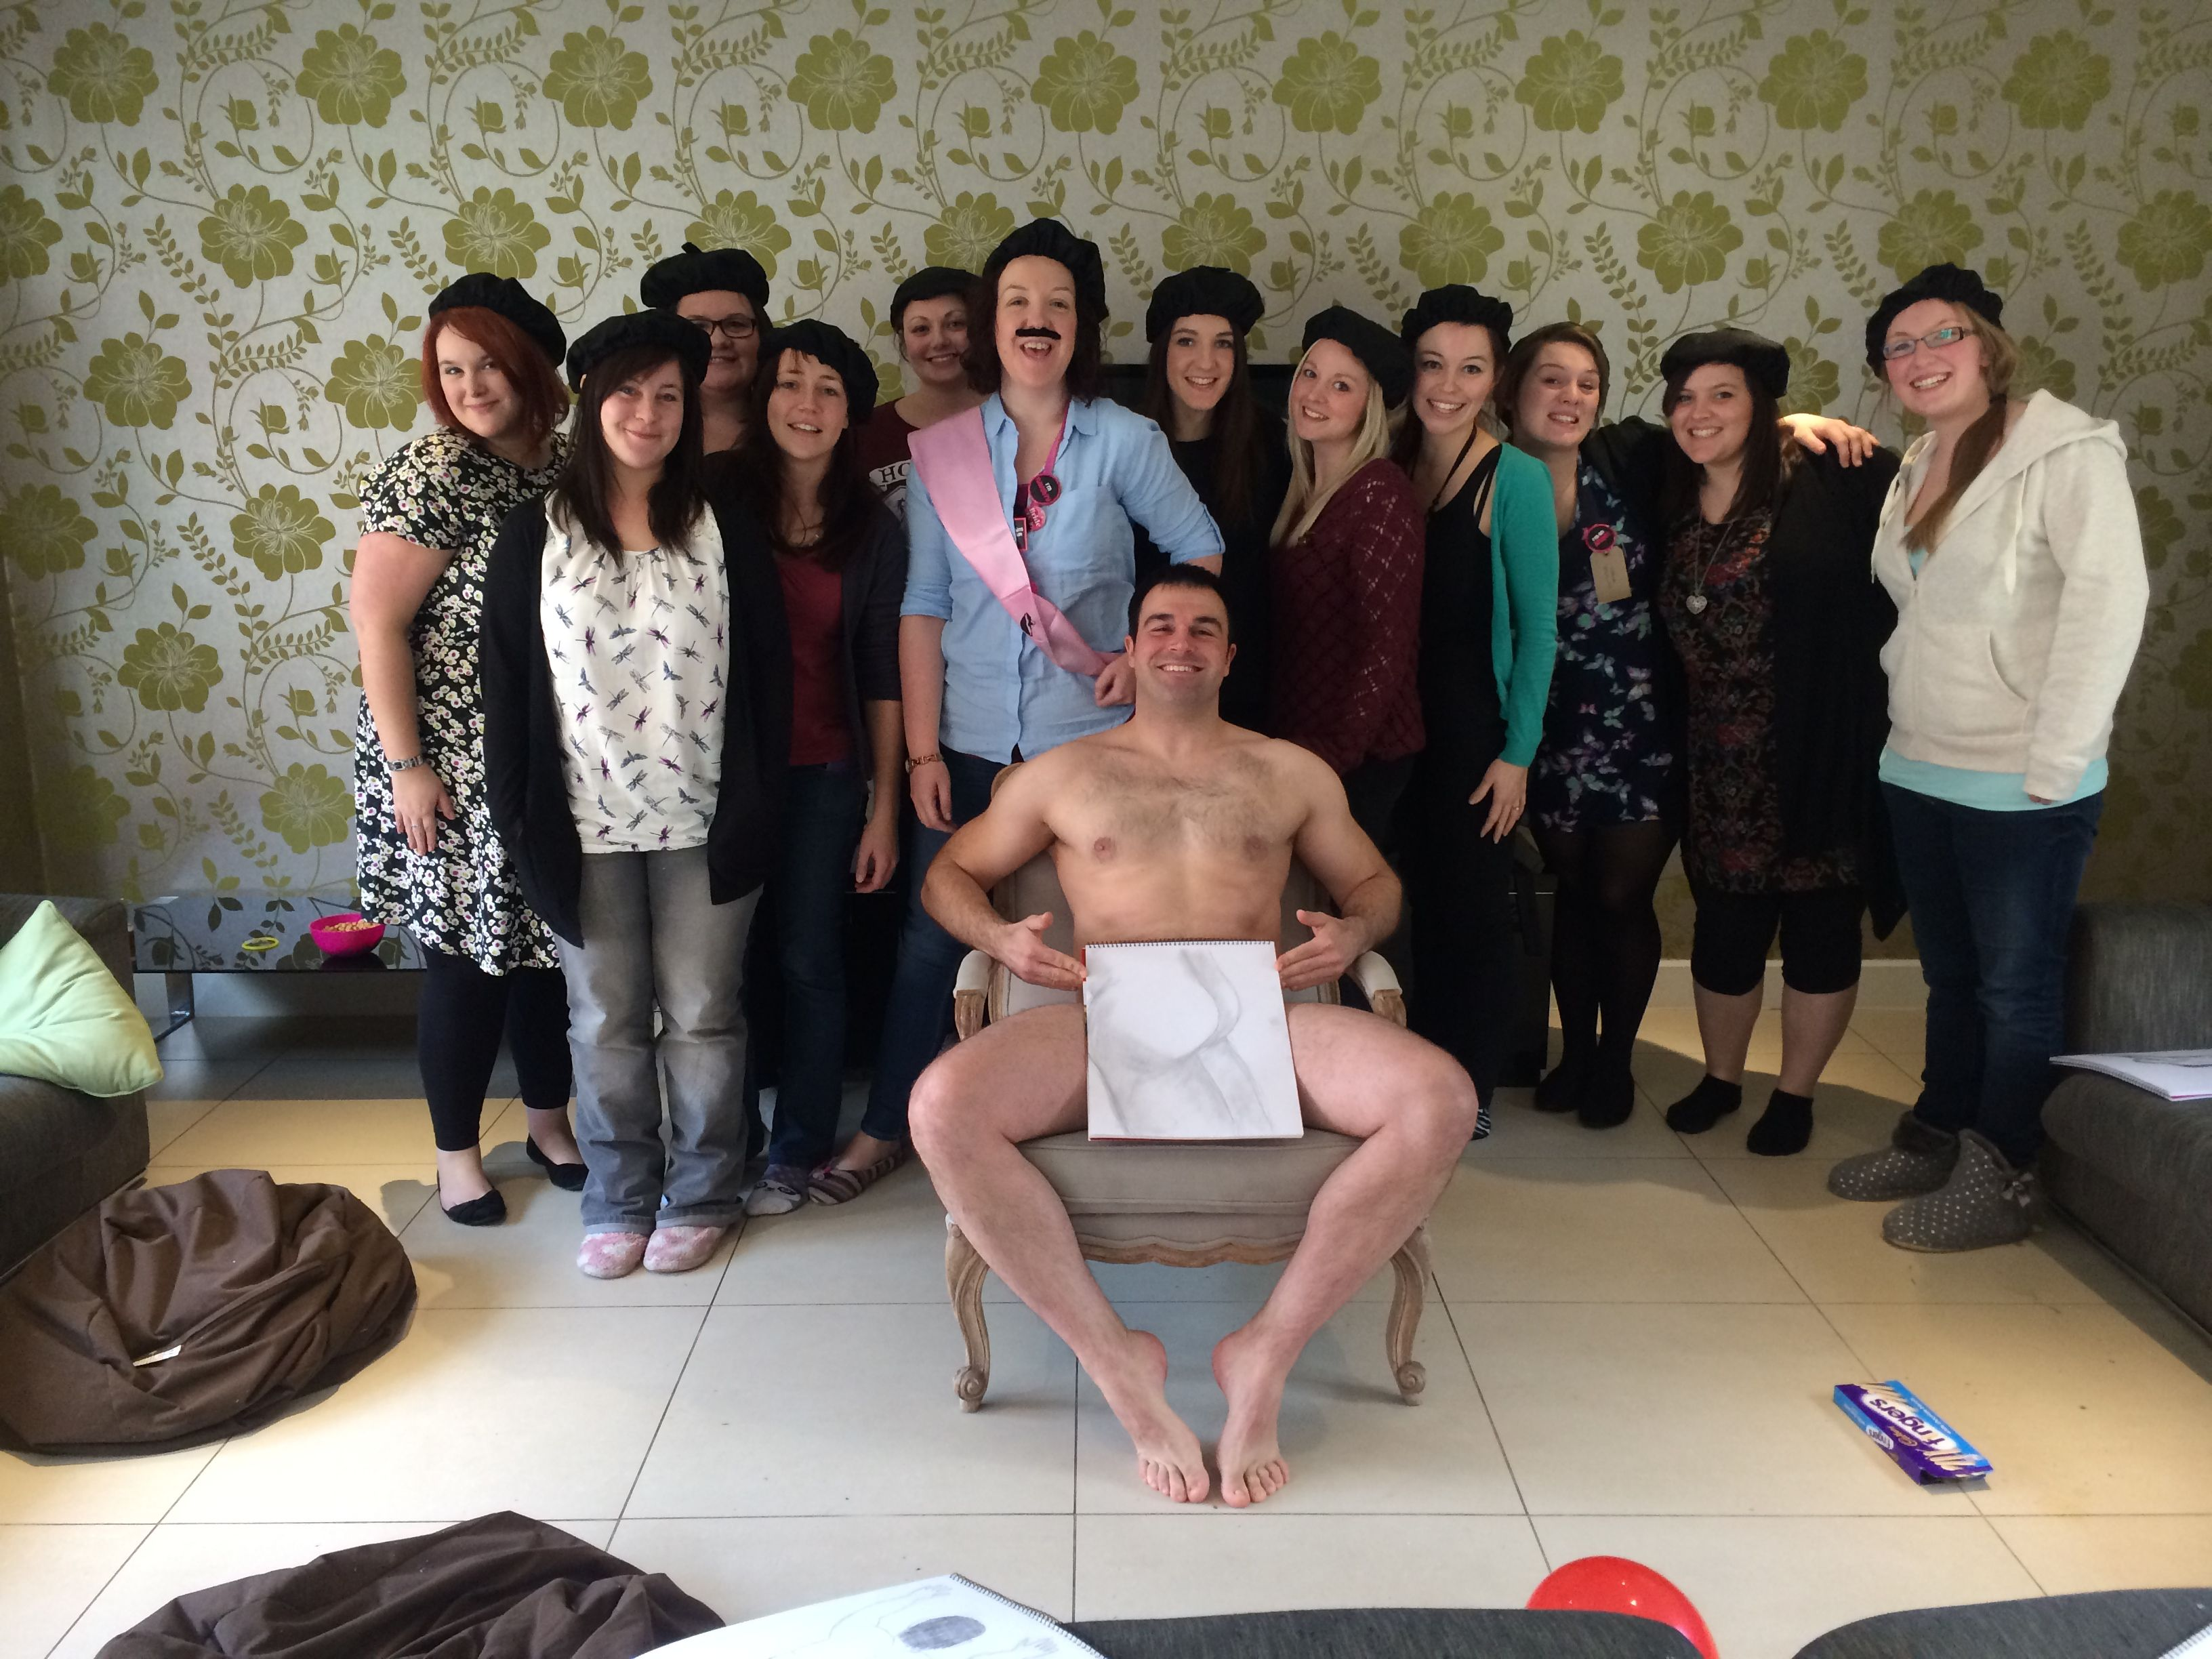 Stripped naked on my hen weekend